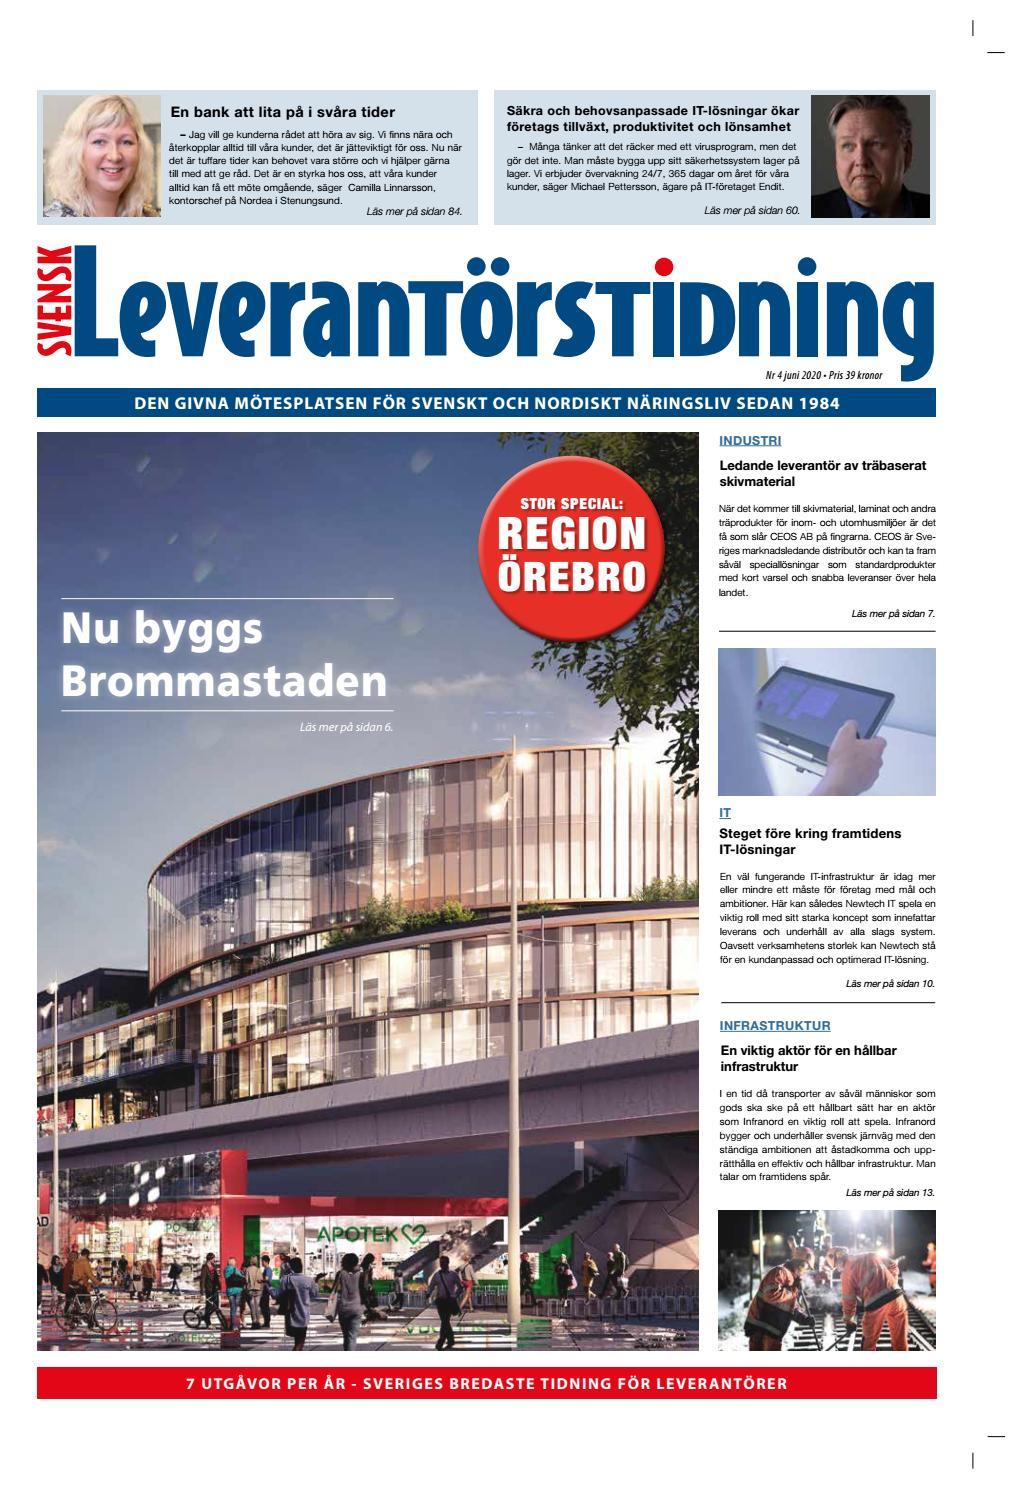 Svensk Leverantorstidning Nr 4 2020 By Hexanova Media Group Ab Issuu